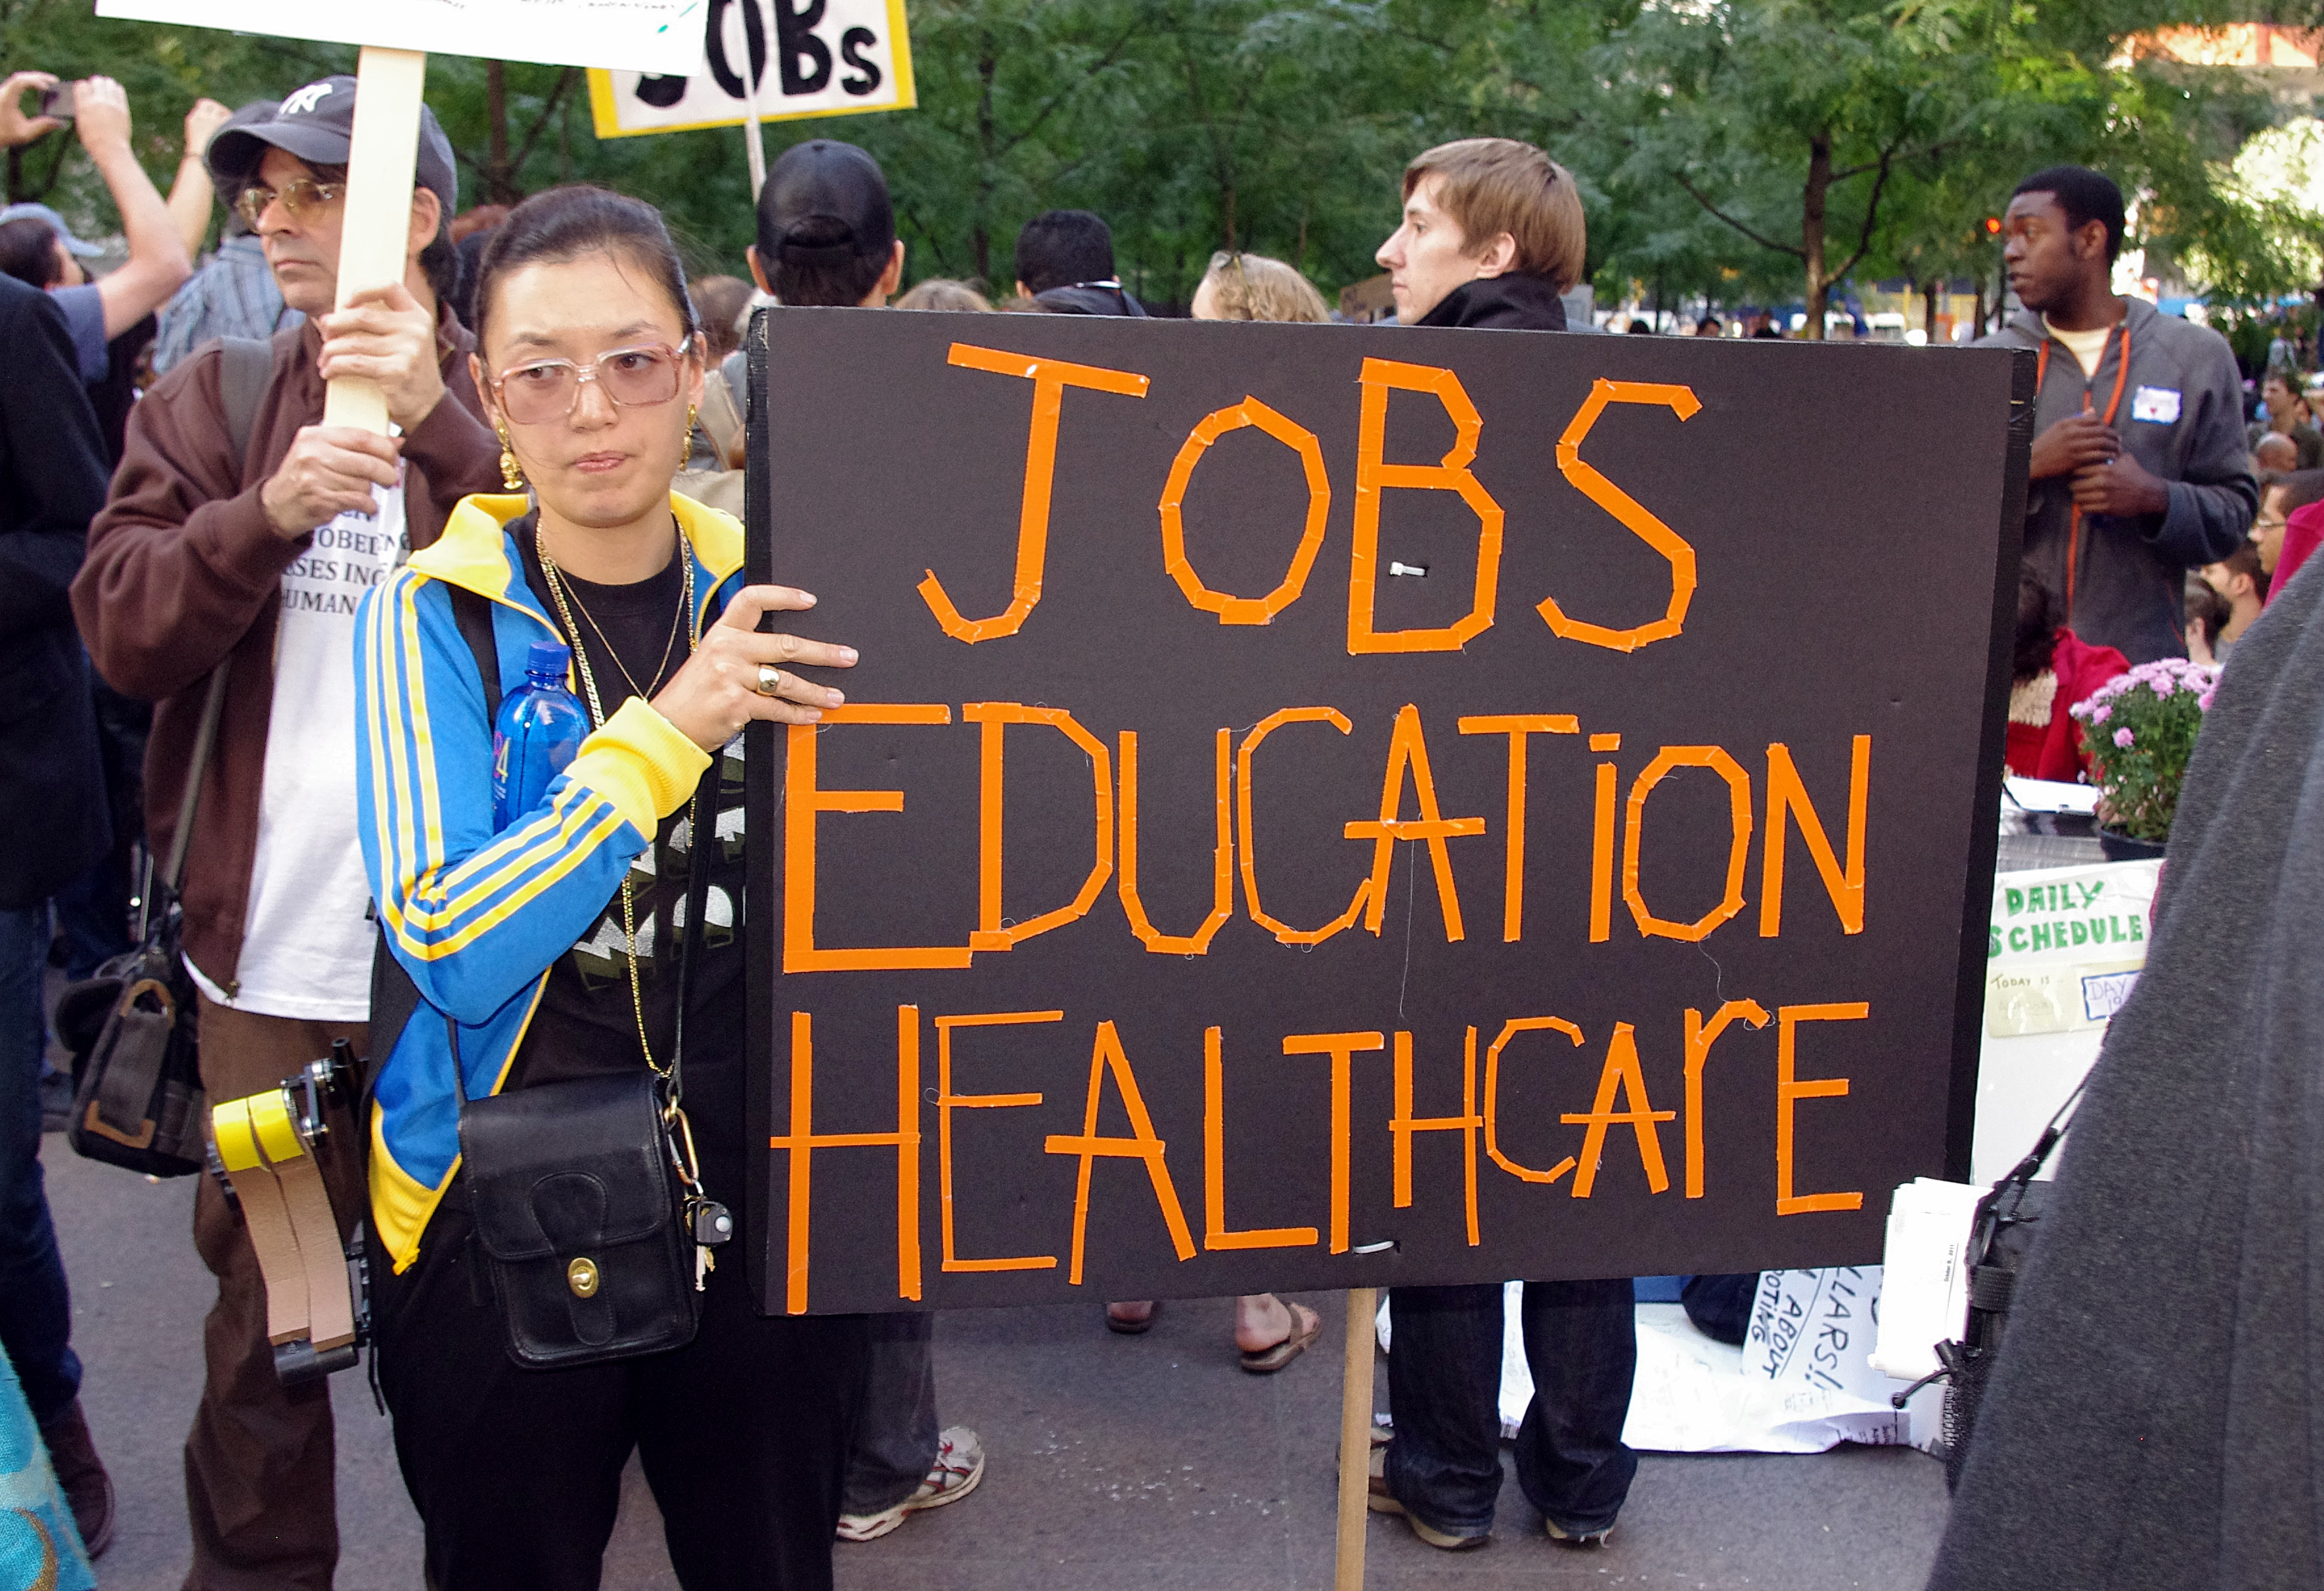 """A woman stands in the foreground holding a black and orange protest sign that reads """"Jobs, Education, Healthcare""""."""